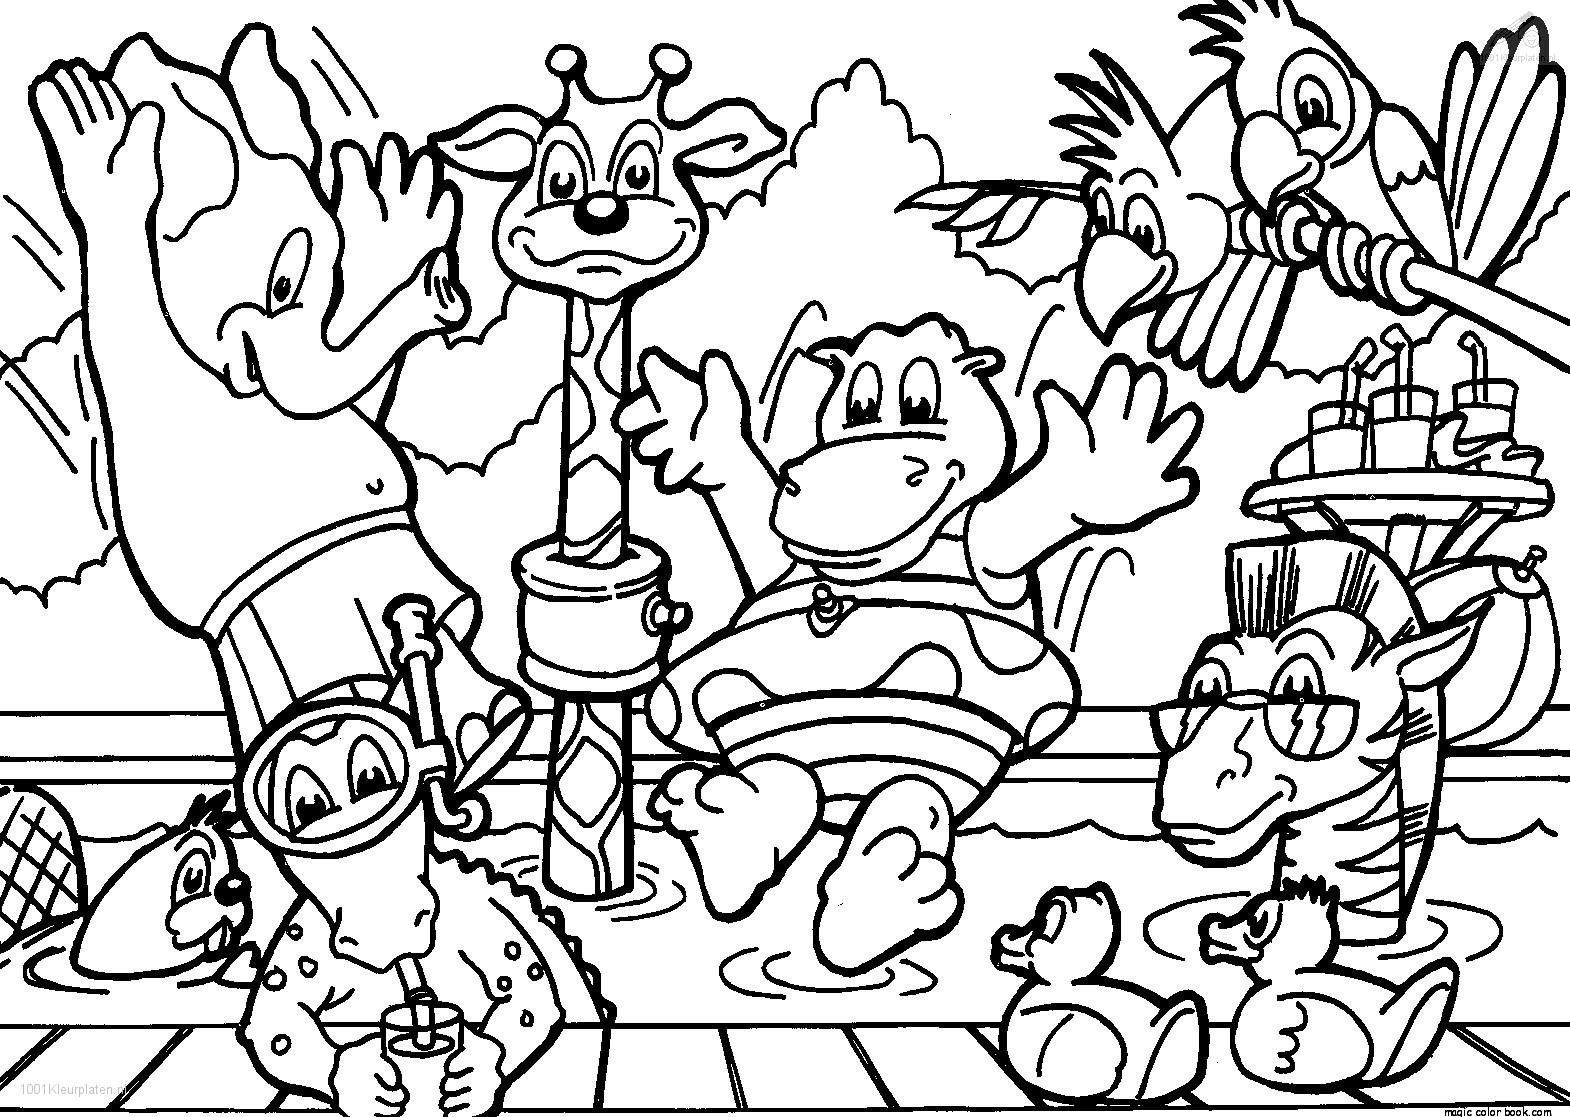 Free Safari Coloring Pages To Print For Kids Description From Coloringtop Com I Searched F Zoo Animal Coloring Pages Animal Coloring Pages Zoo Coloring Pages